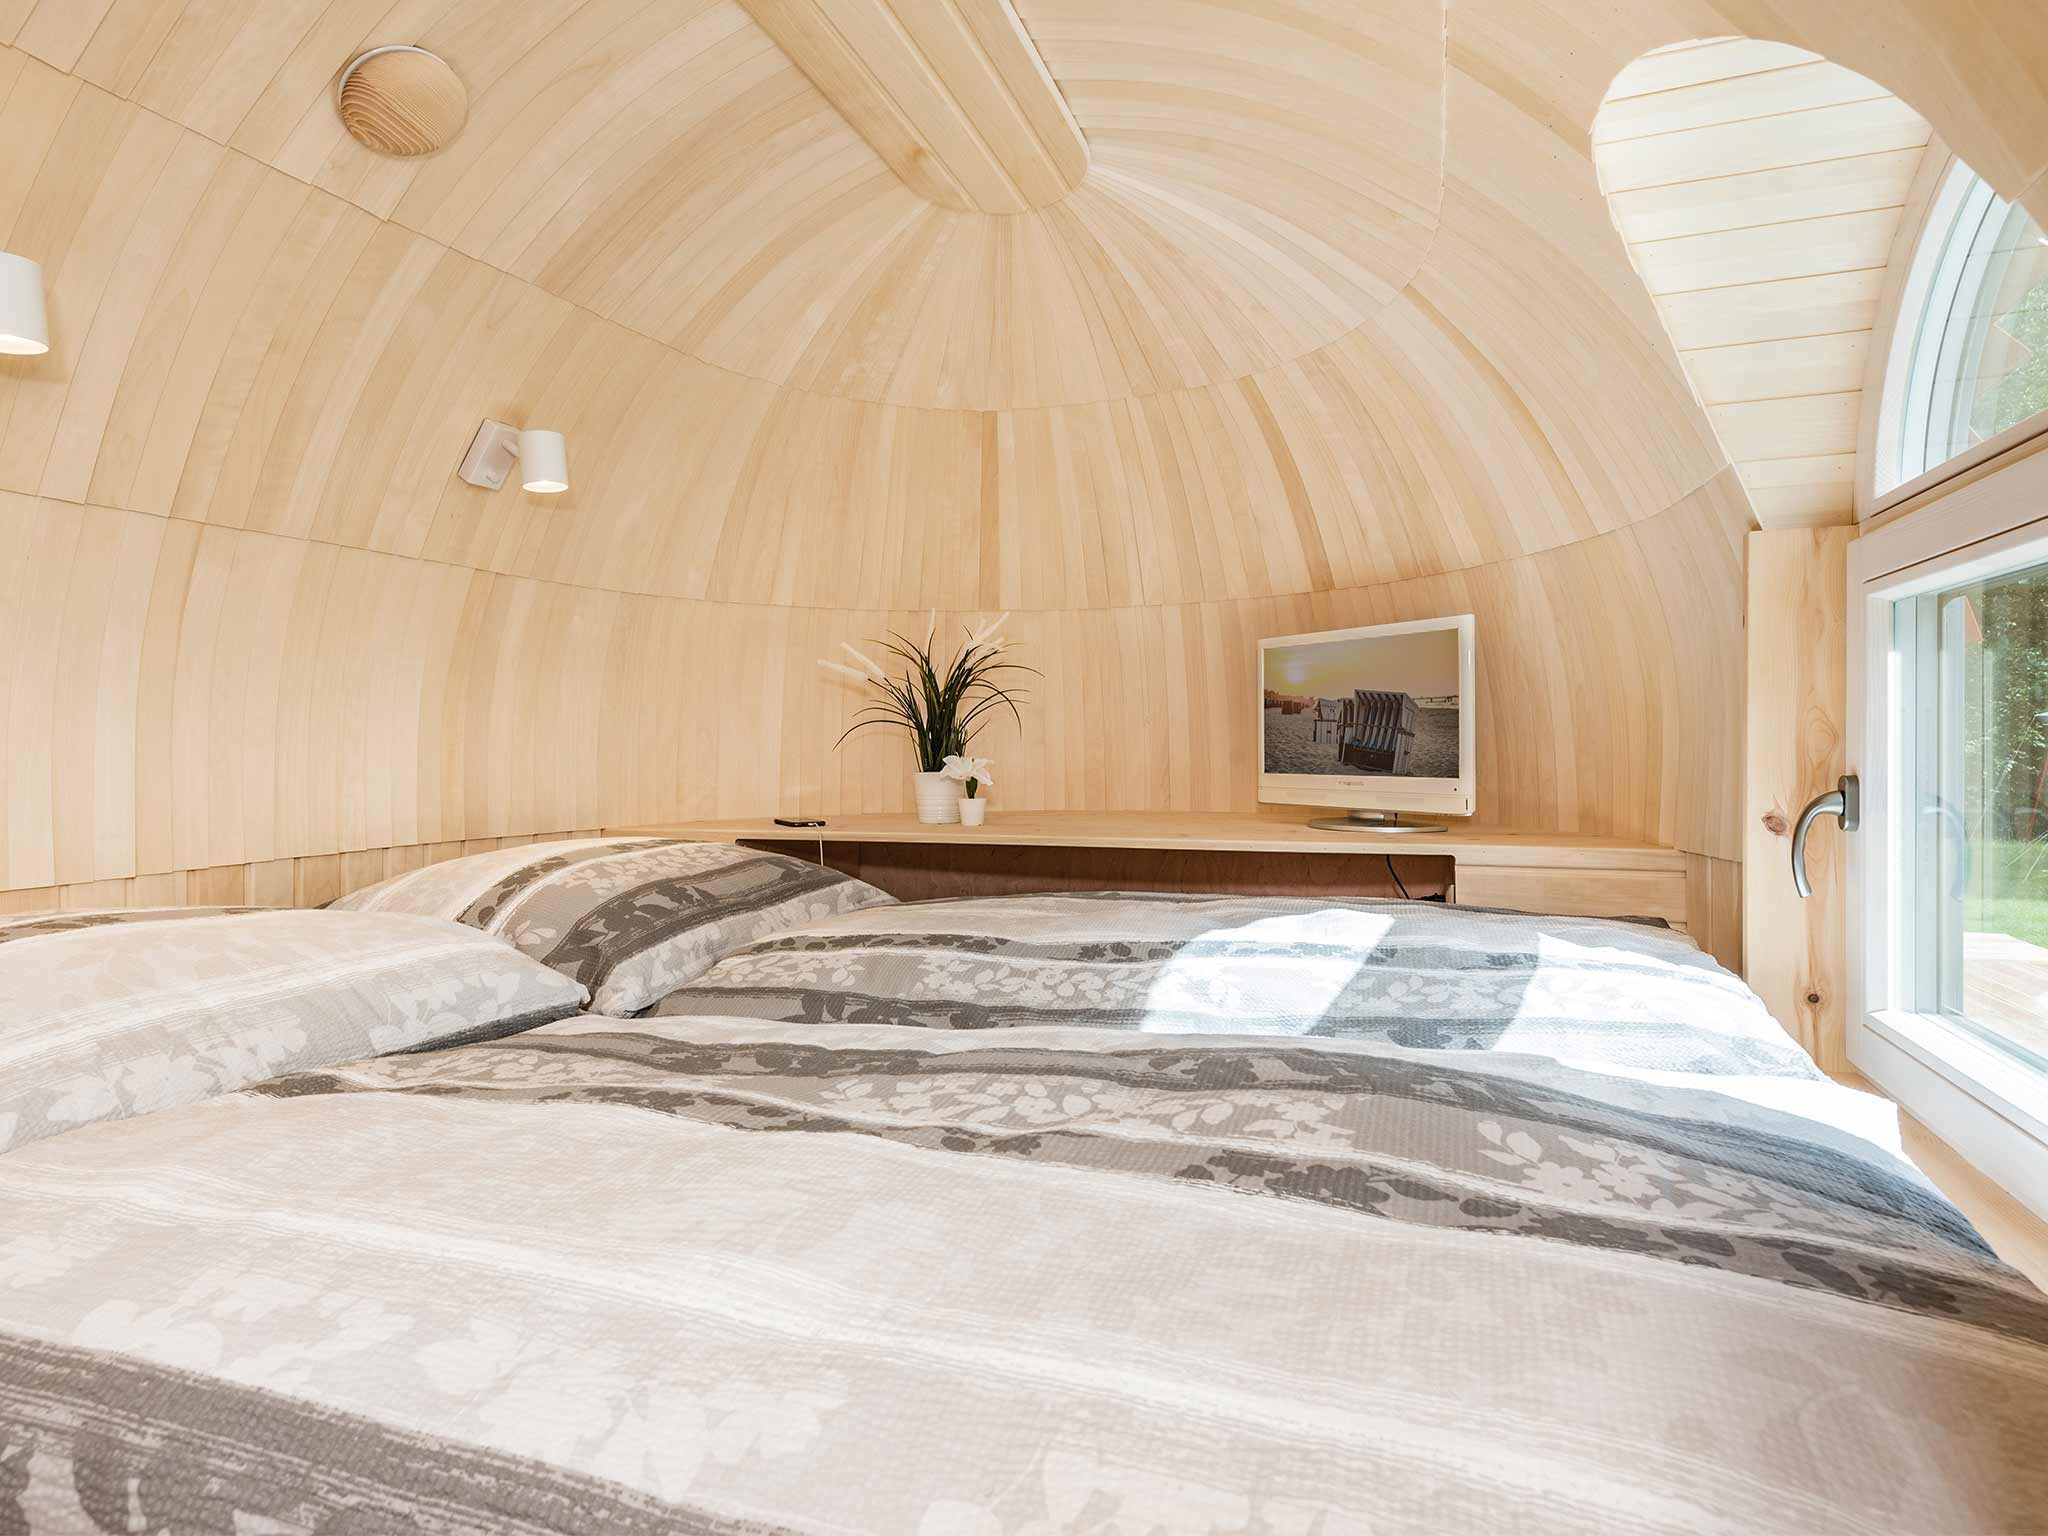 Tiny House Ostsee Usedom Bansin Schlafzimmer